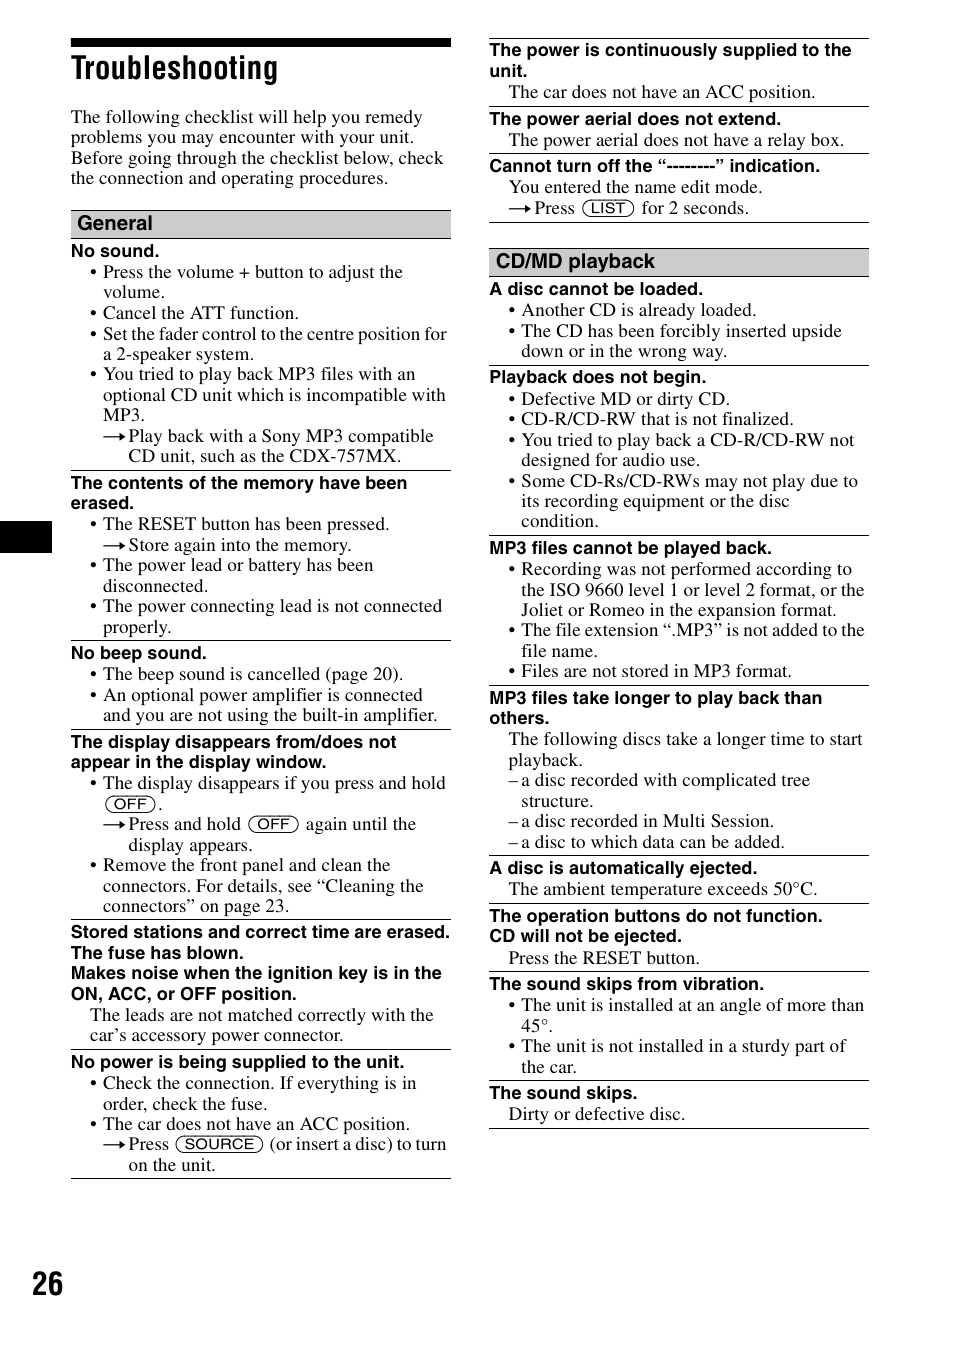 hight resolution of troubleshooting 26 troubleshooting sony cdx f5500 user manual page 26 84